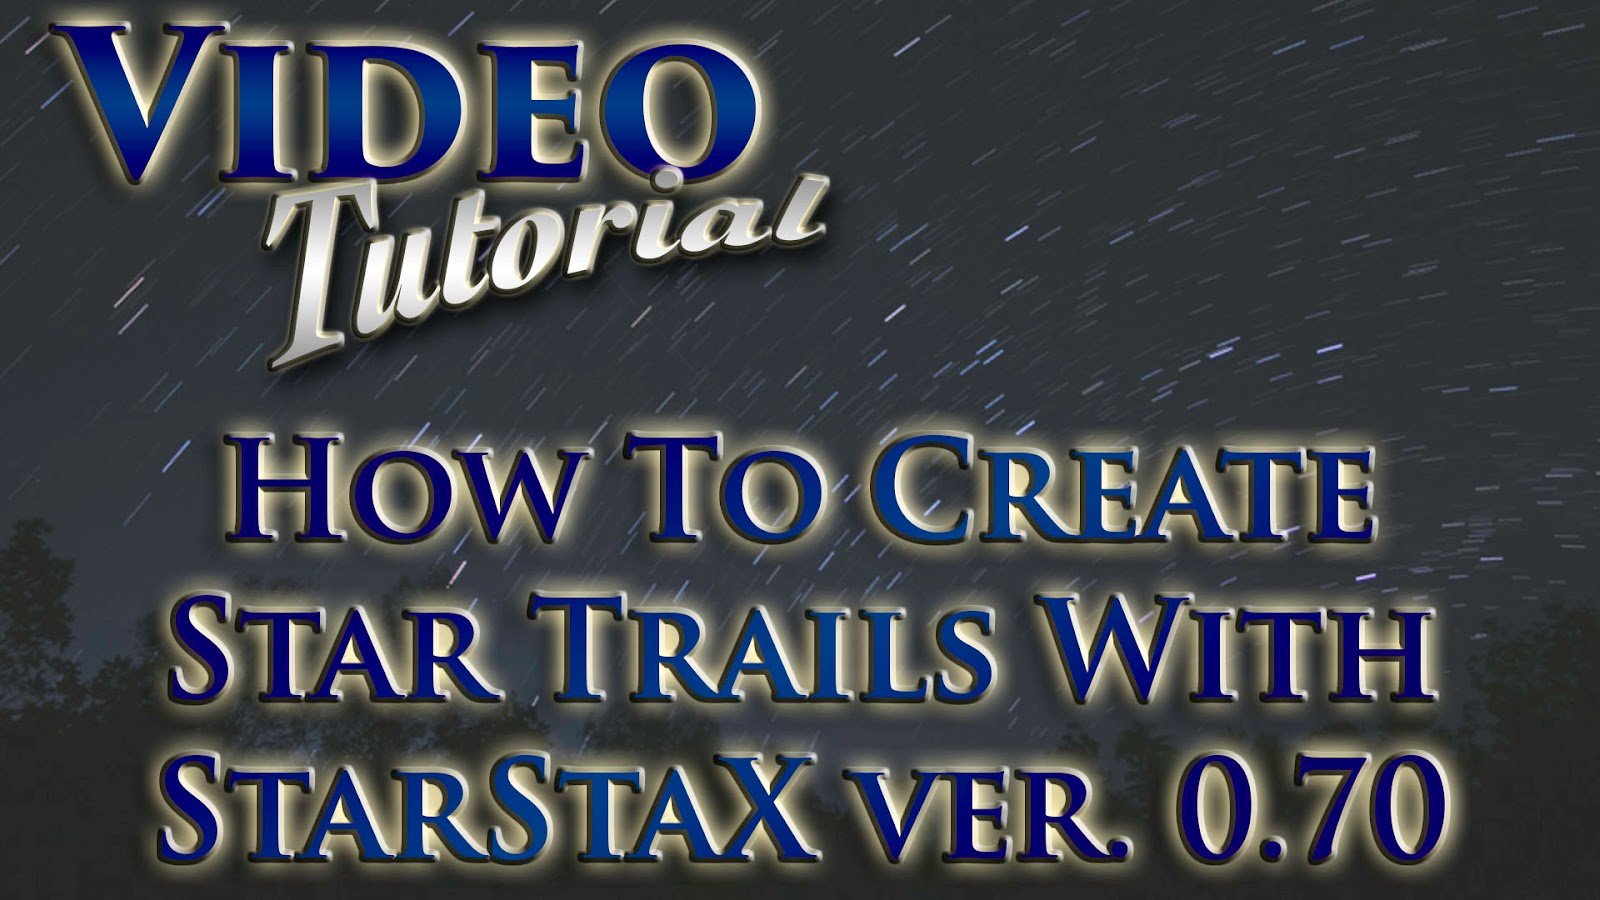 Learn How To Create Star Trails With StarStaX ver. 0.70